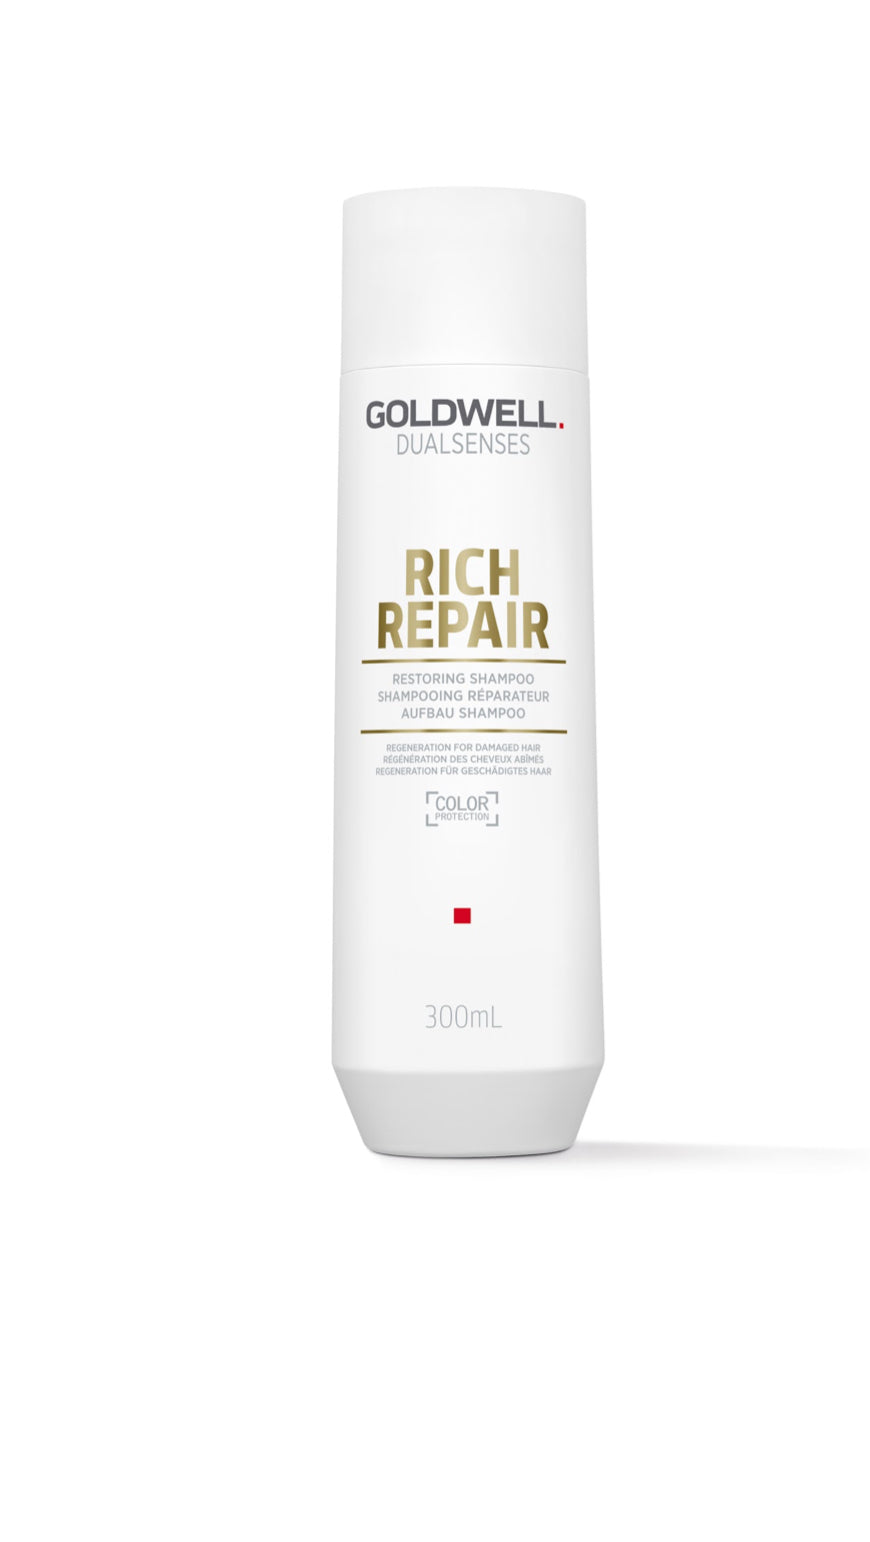 Dualsenses Rich Repair Restoring Shampoo. (300ml)